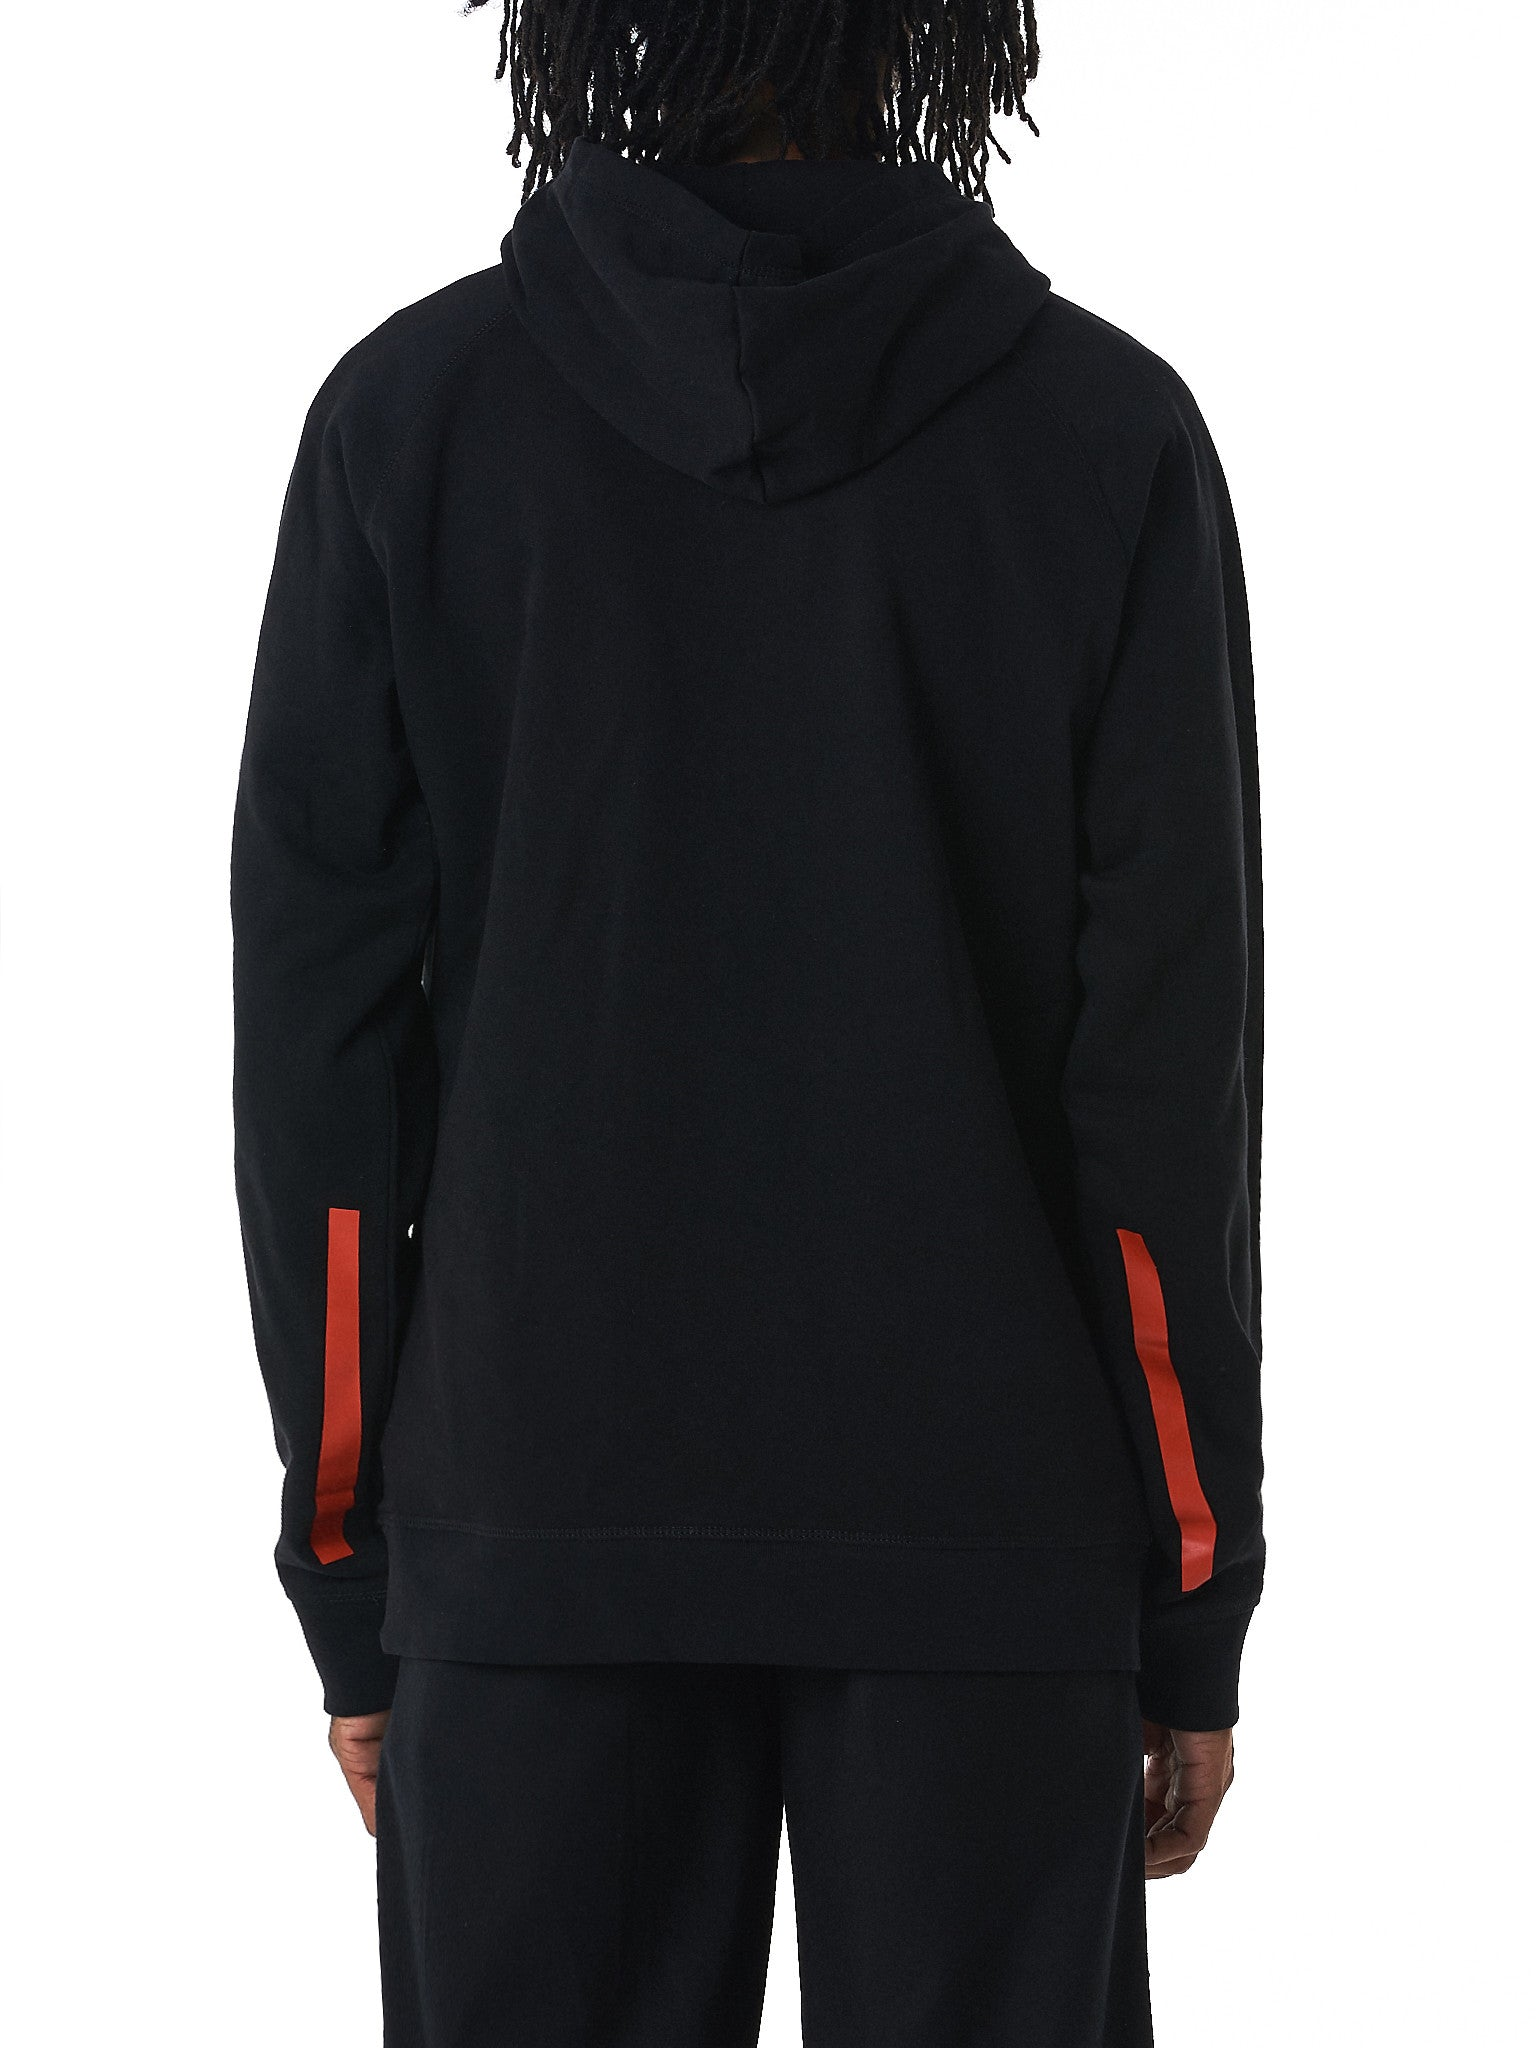 GEO 'Godspeed' hooded sweater hlorenzo back view